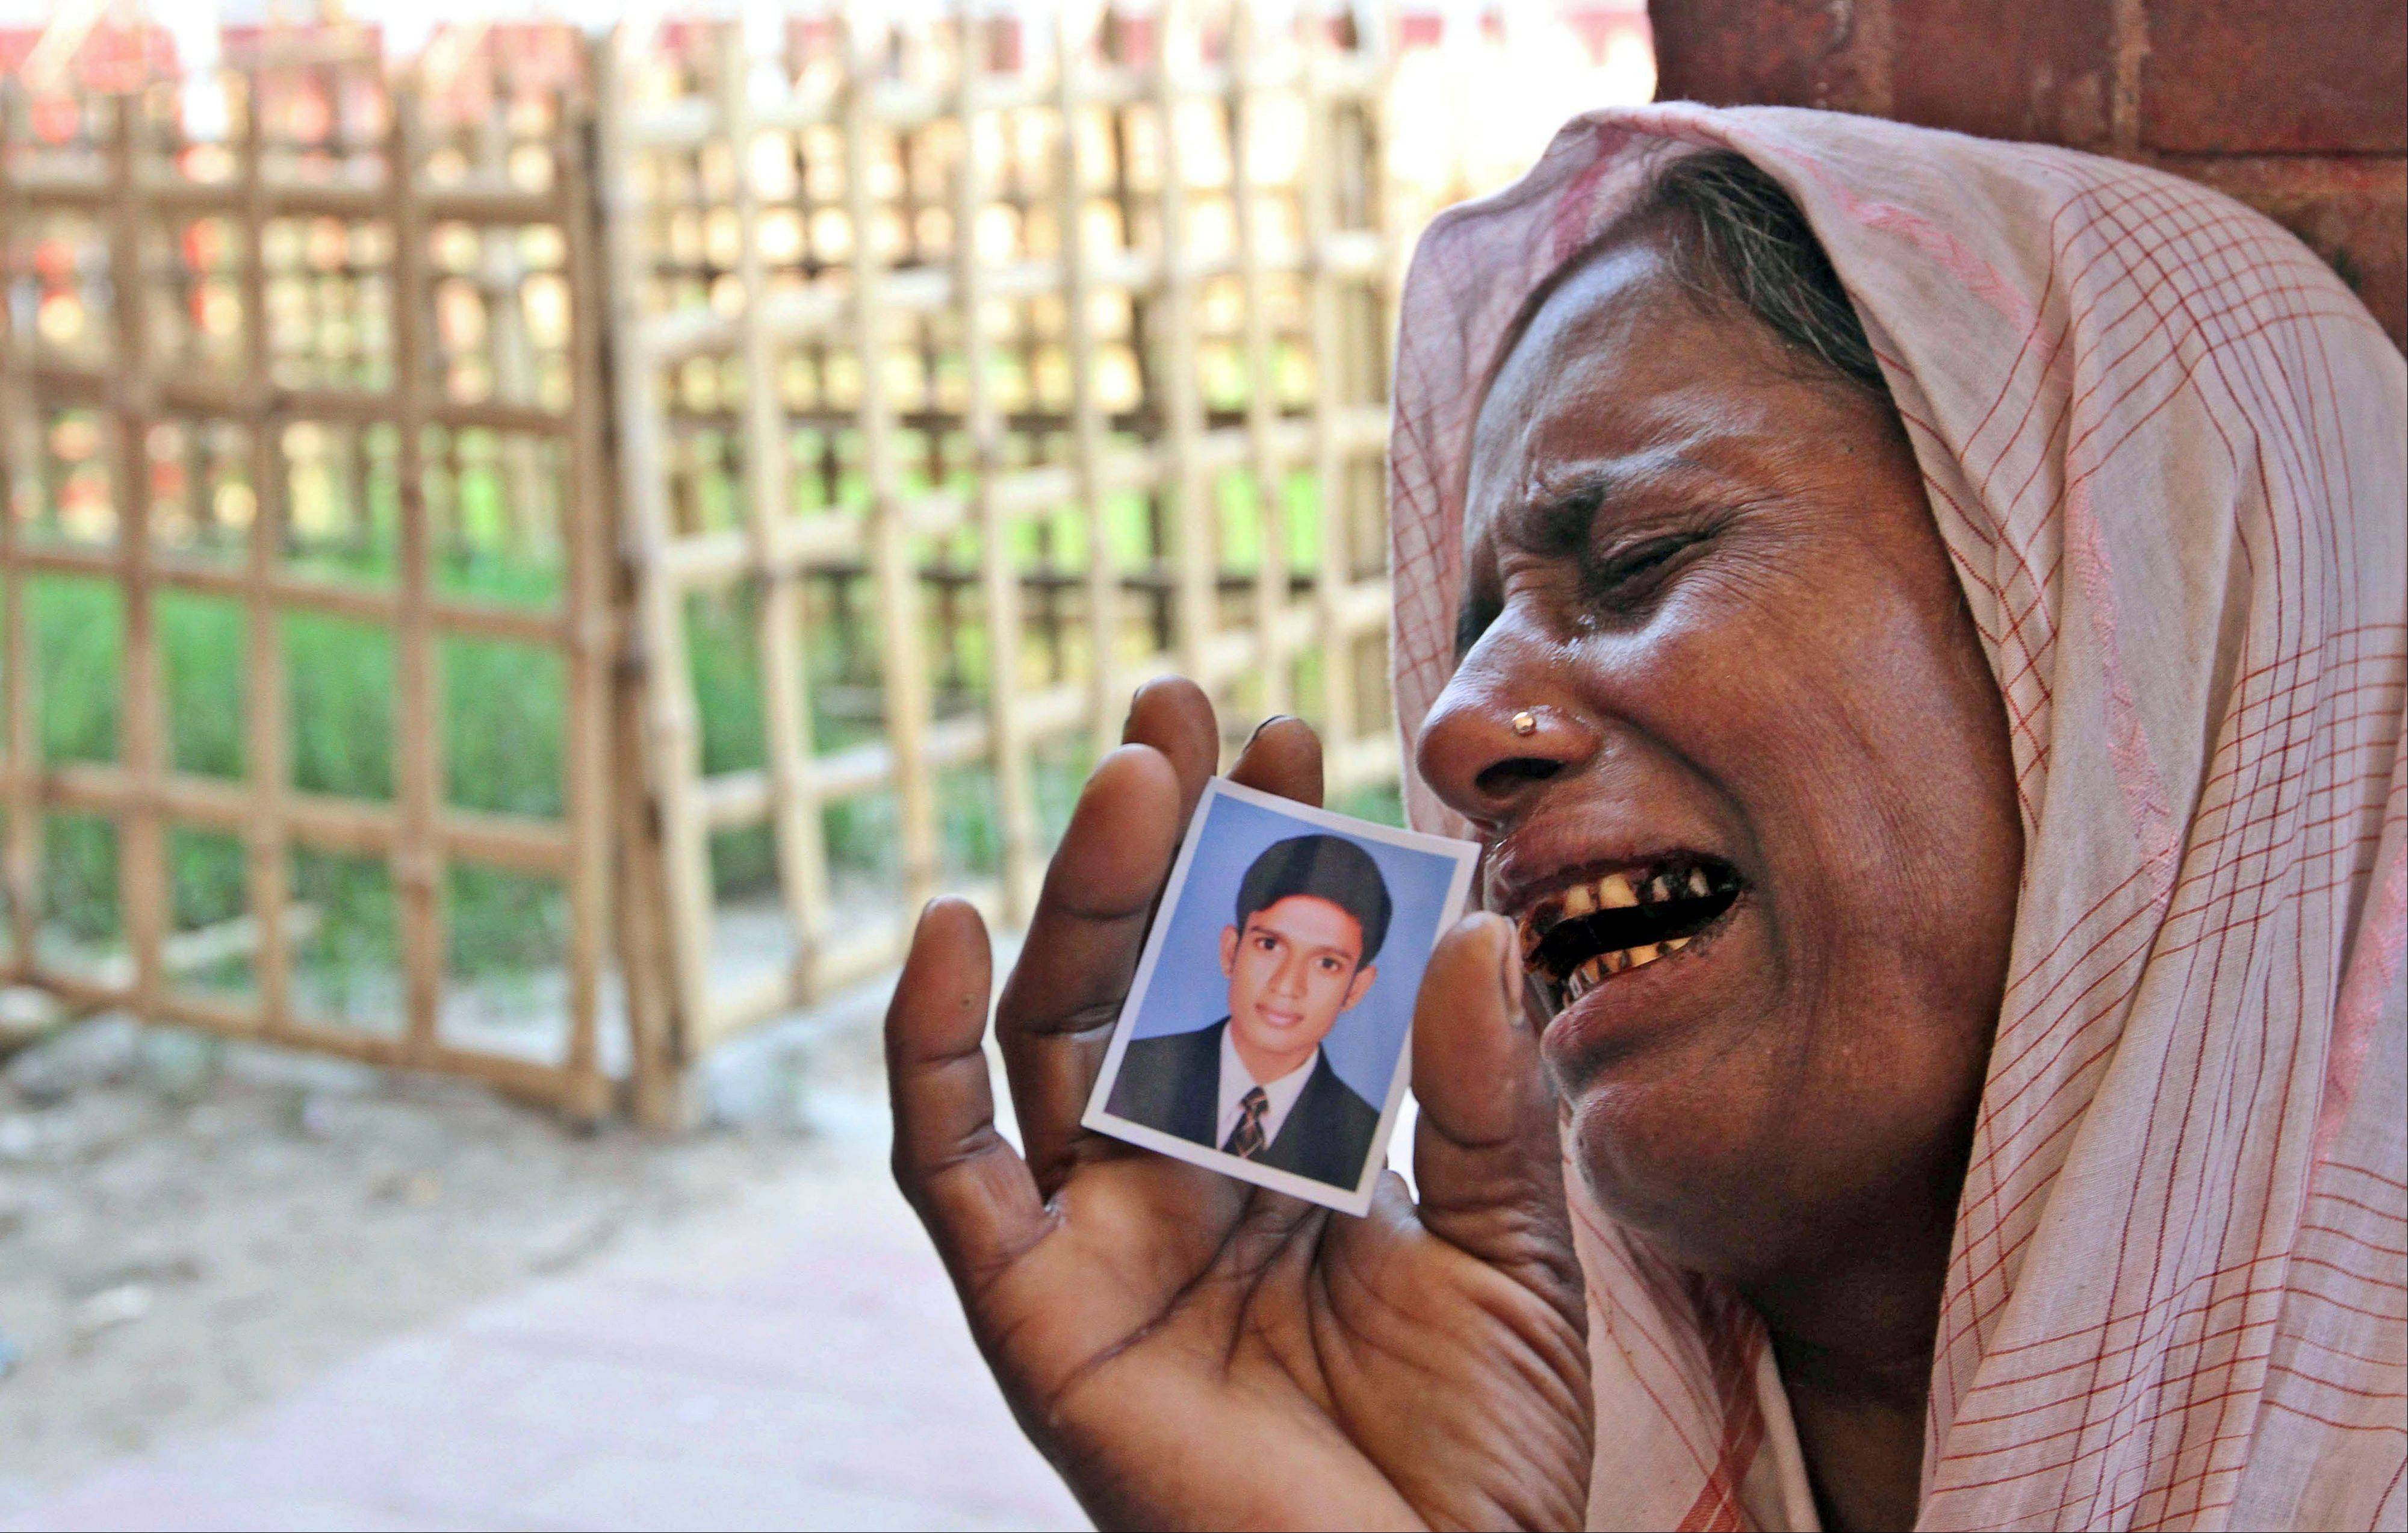 A Bangladeshi woman, holding a photo of her missing son, cries at a graveyard after a garments factory building collapse in Savar near Dhaka, Bangladesh, Friday May 3, 2013.